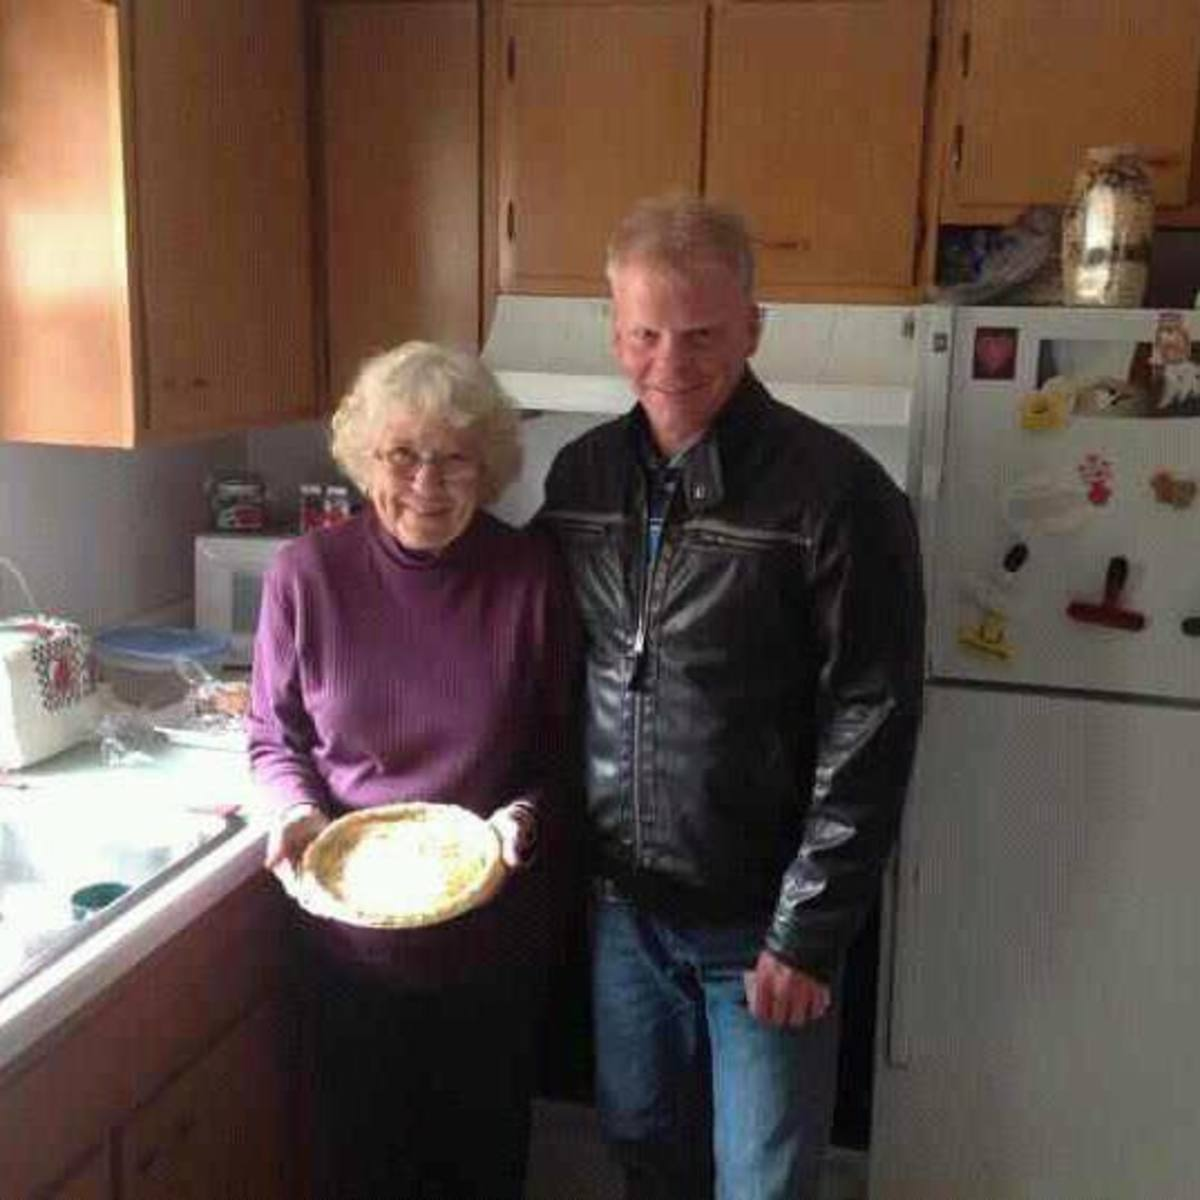 Mom, still baking pies at 85 with my brother, Kerry who had better save some pie for me.